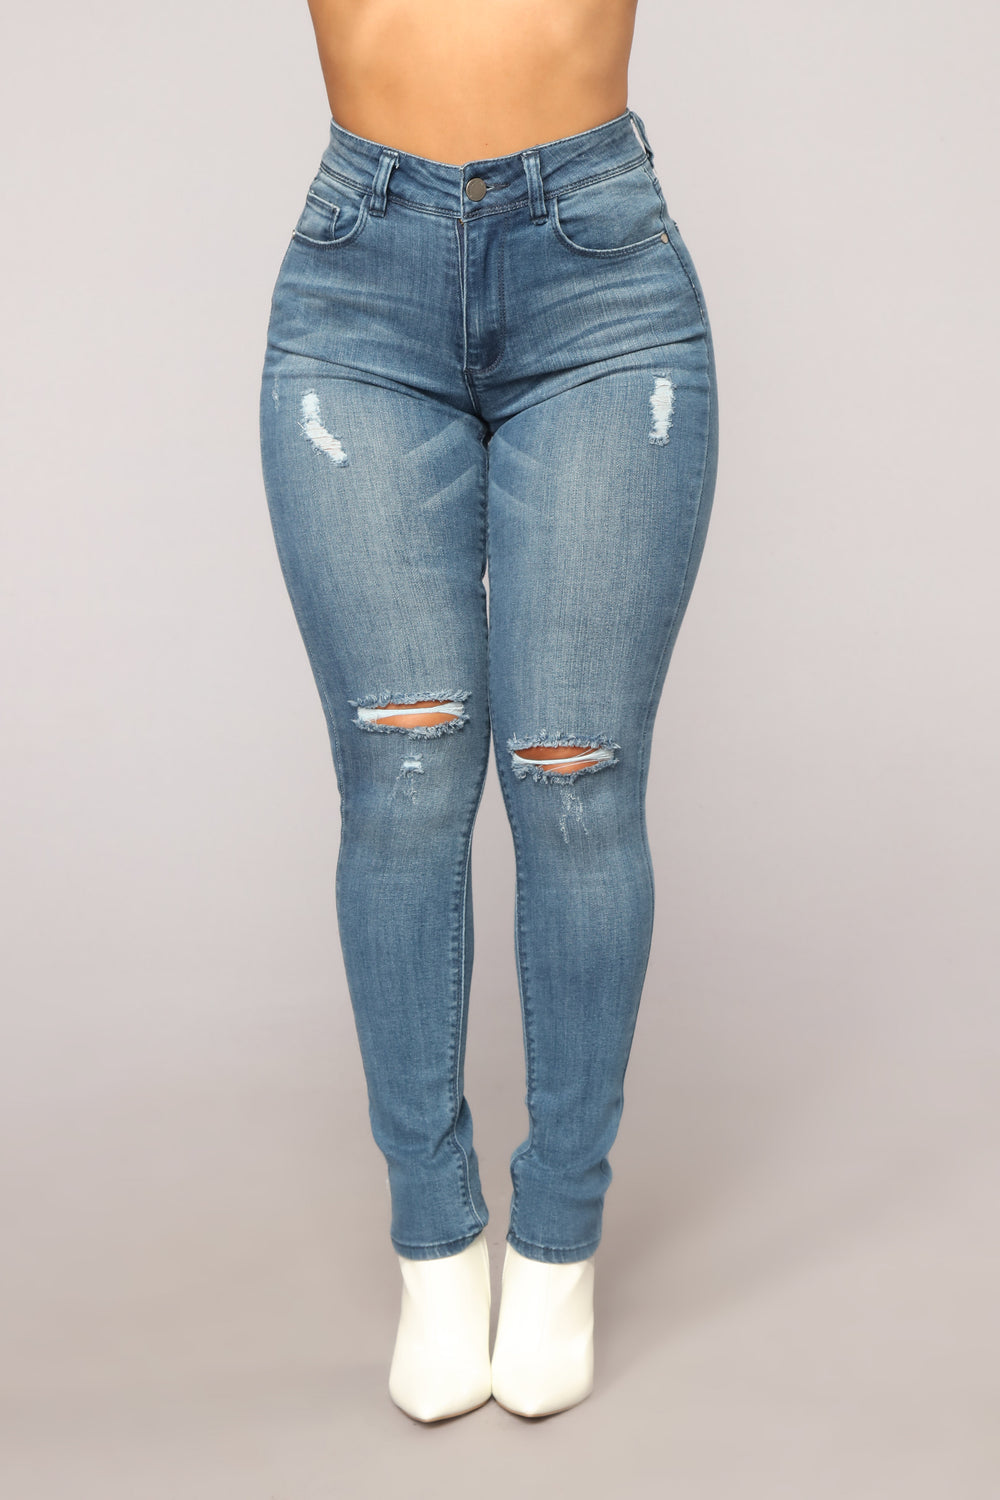 Think About It Skinny Jeans - Medium Blue Wash